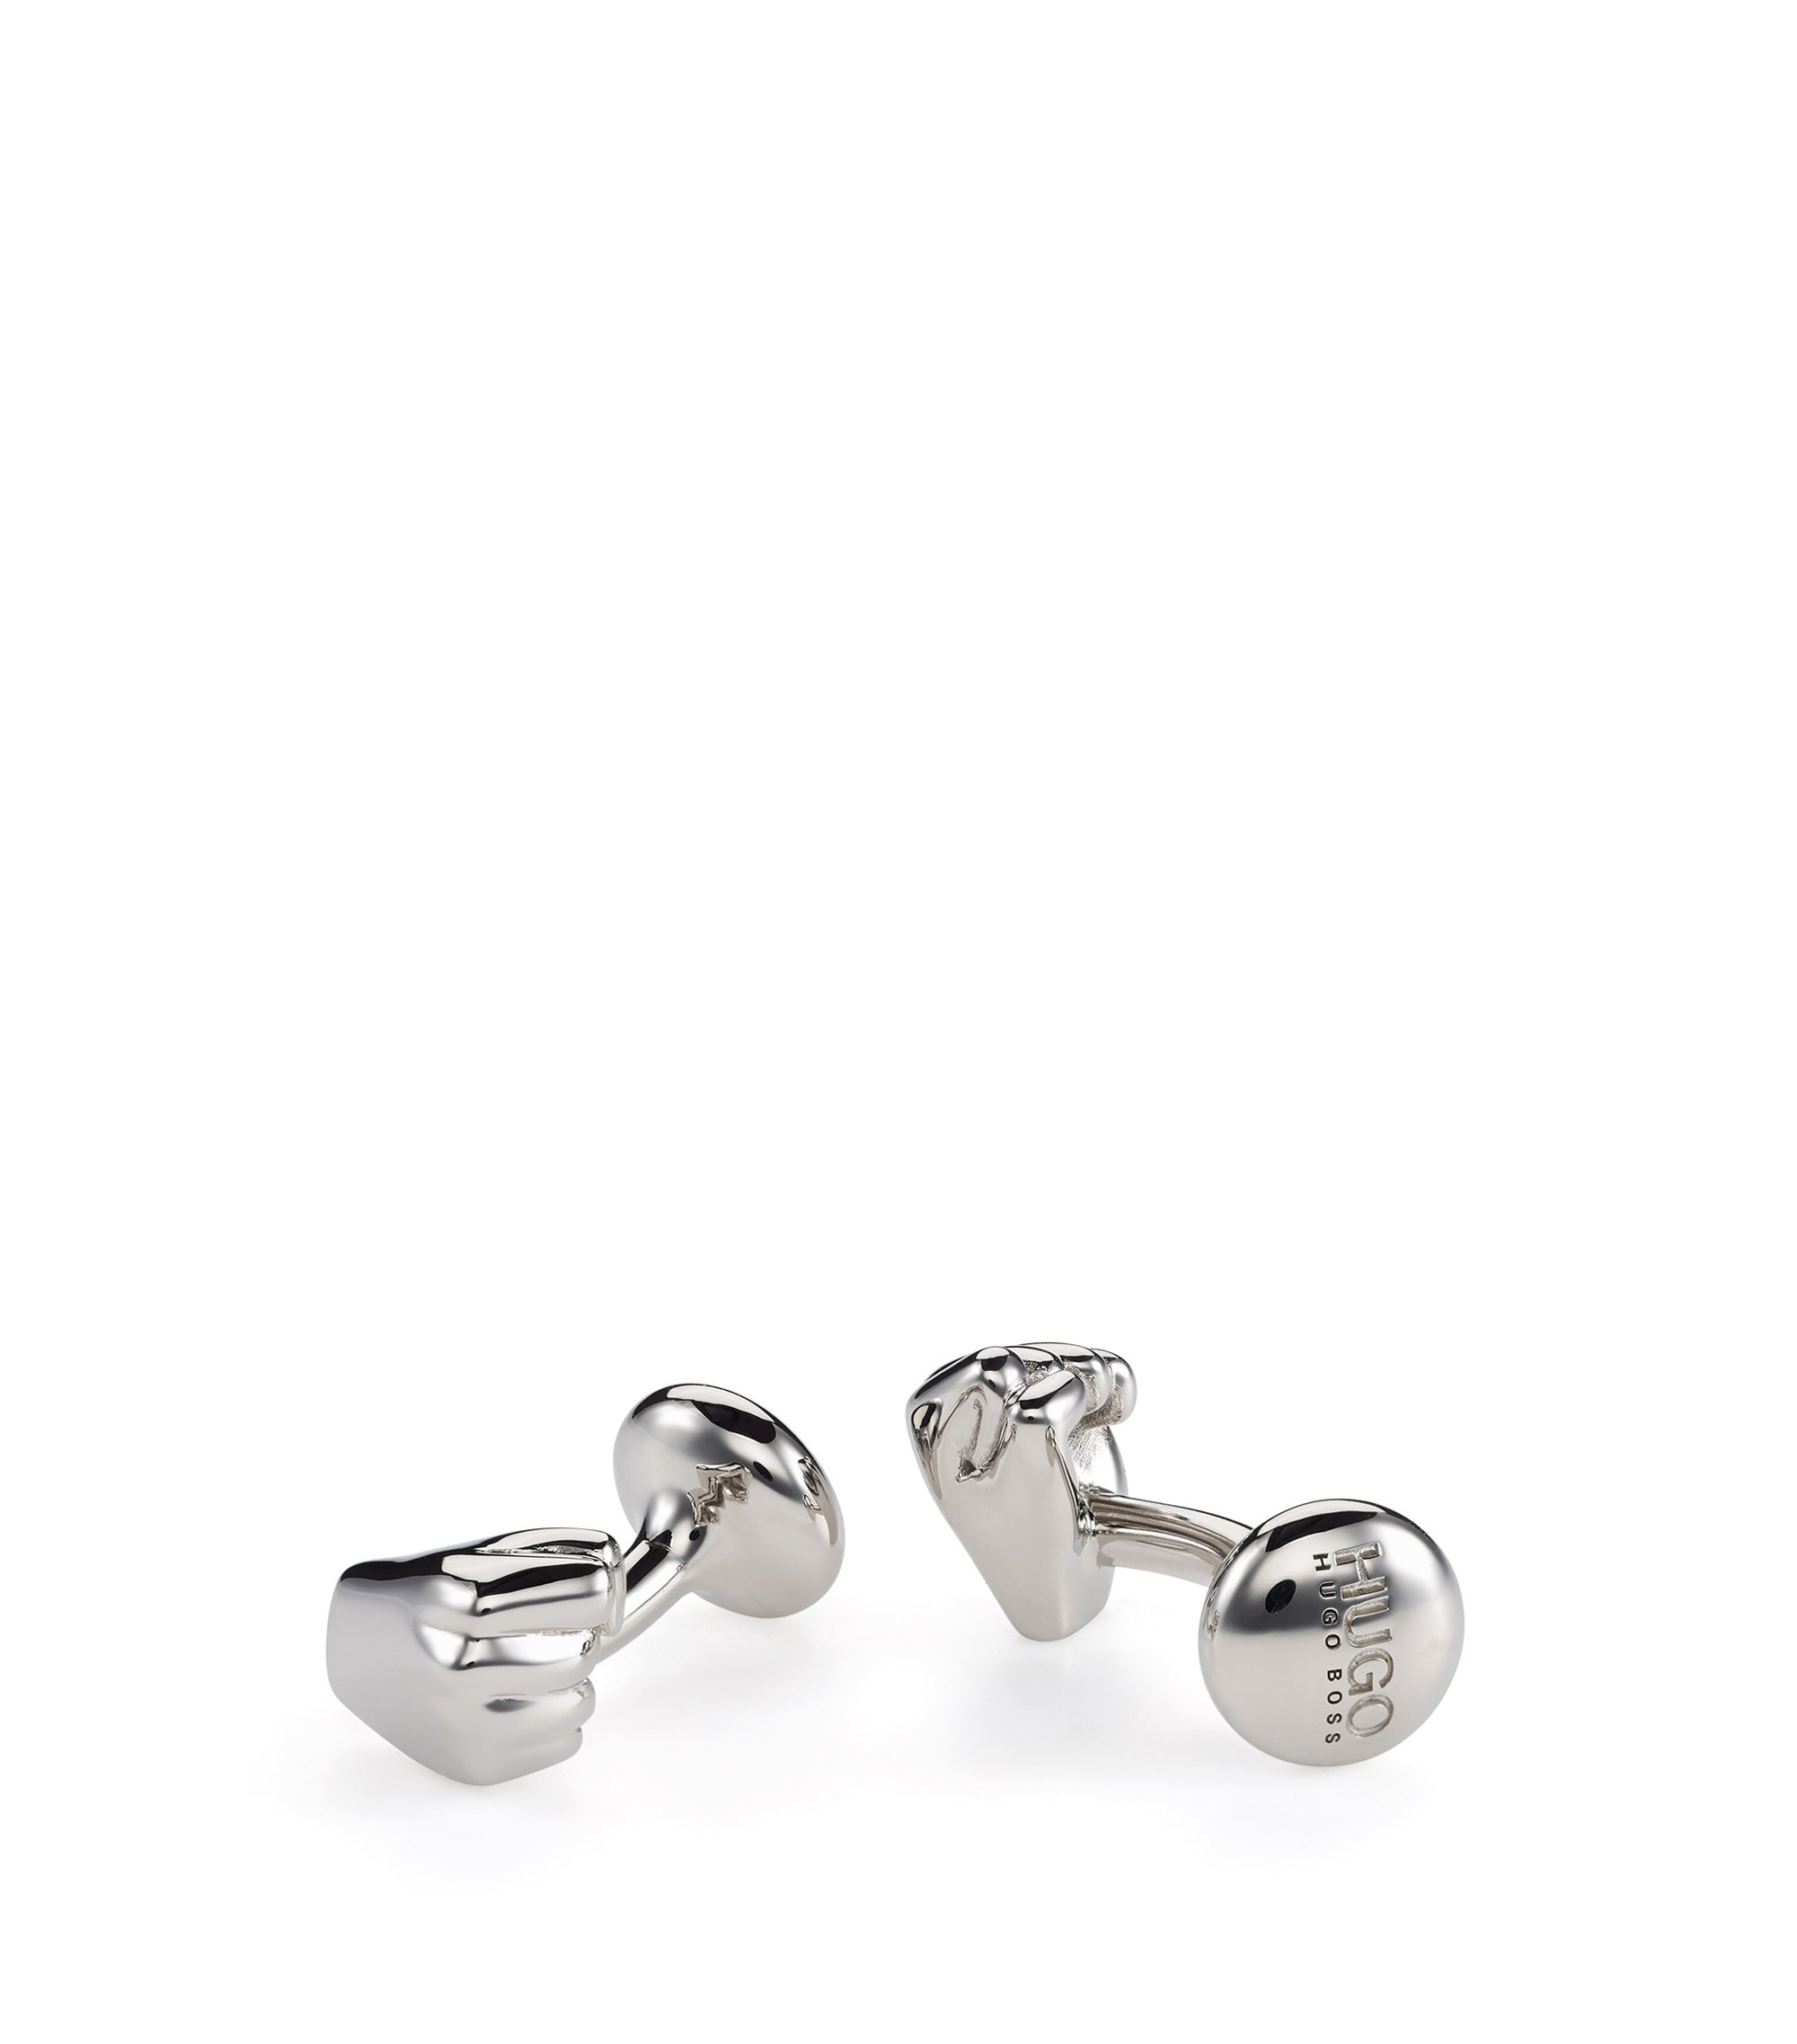 Clenched-fist cufflinks in polished metal , Silver